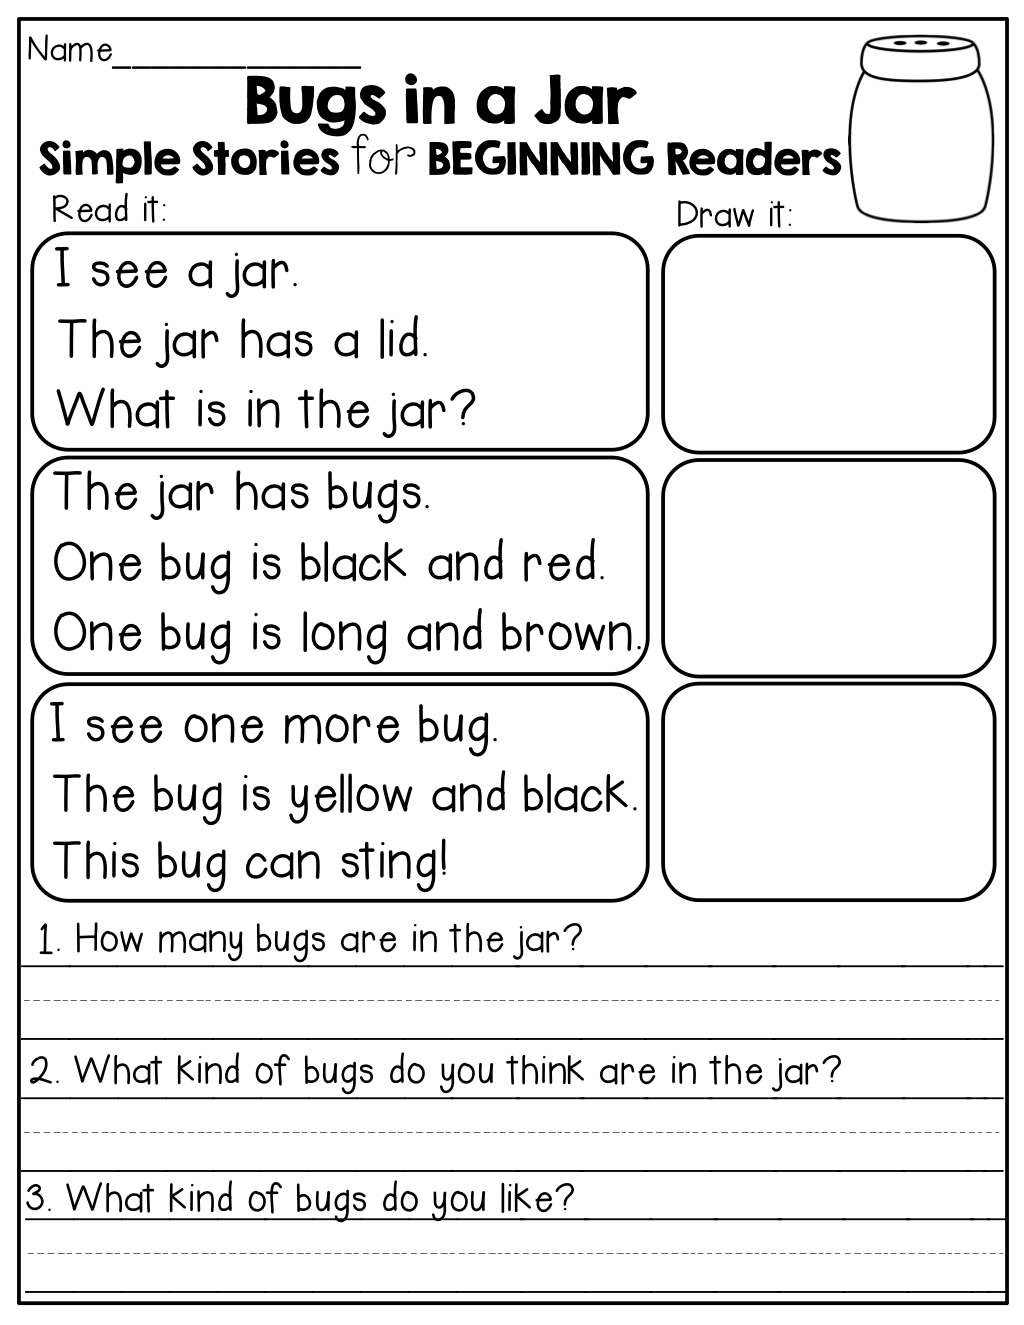 Kindergarten Preschool Reading Writing Worksheets Draw It Kindergarten Best Free Printable